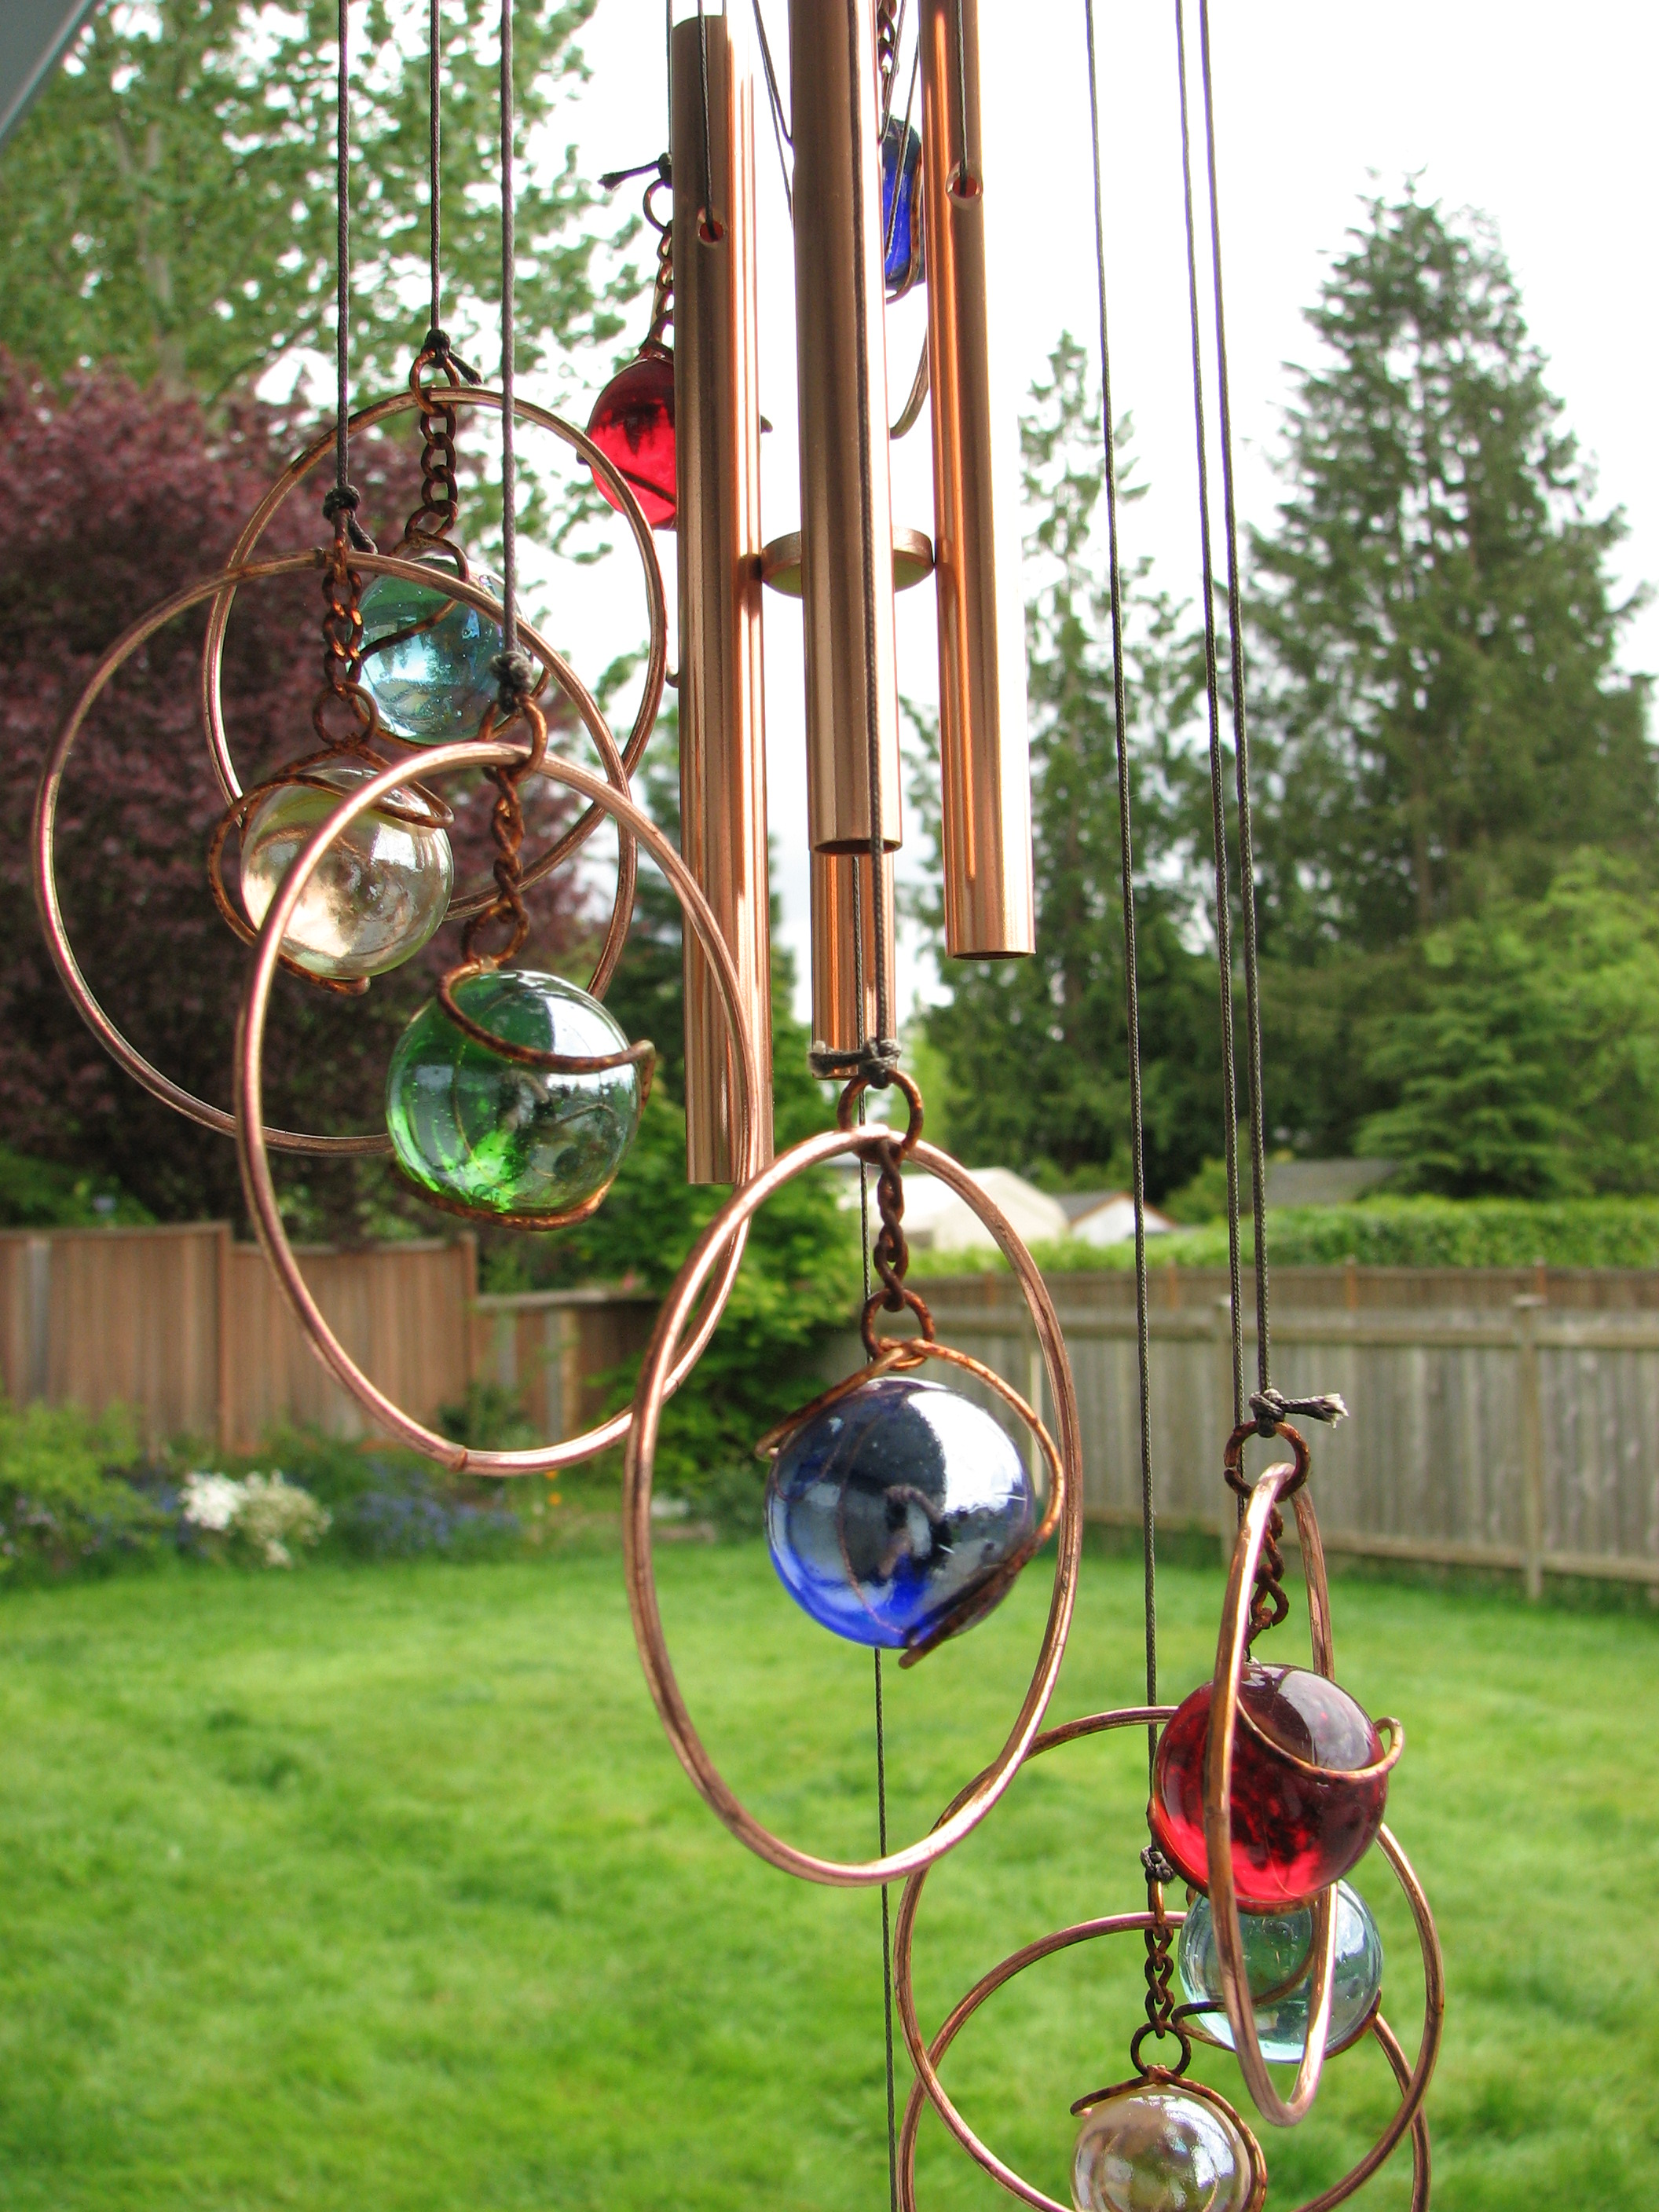 How To Make Wind Chimes Easy Wind Chime Ideas